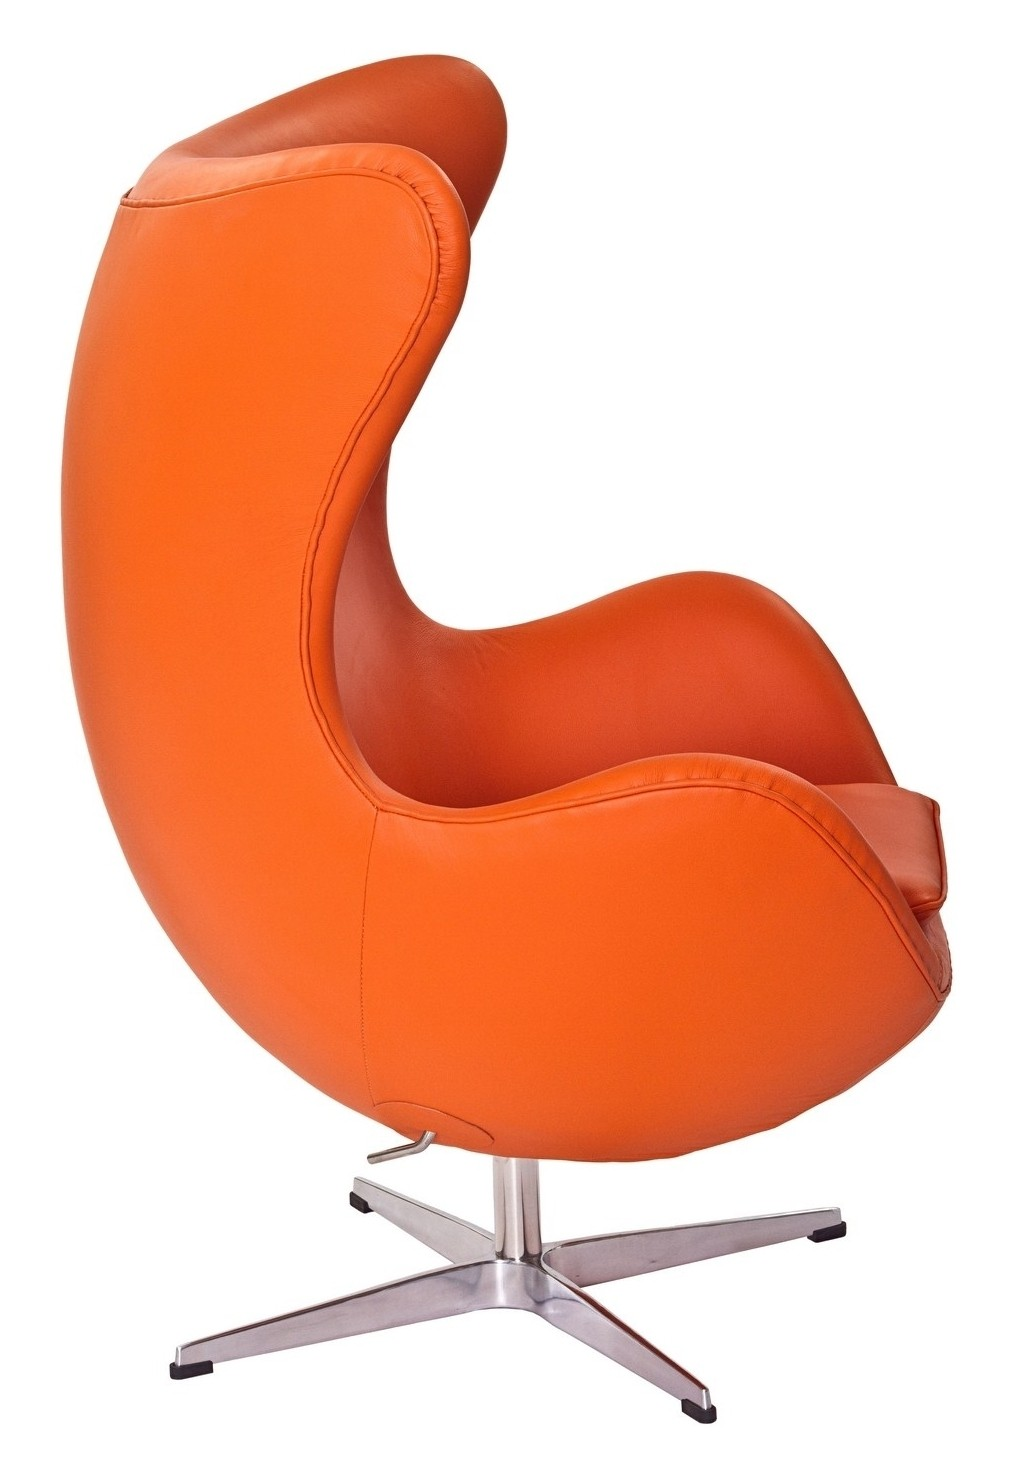 Glove Chair in Orange Aniline Leather from Renegade EEI